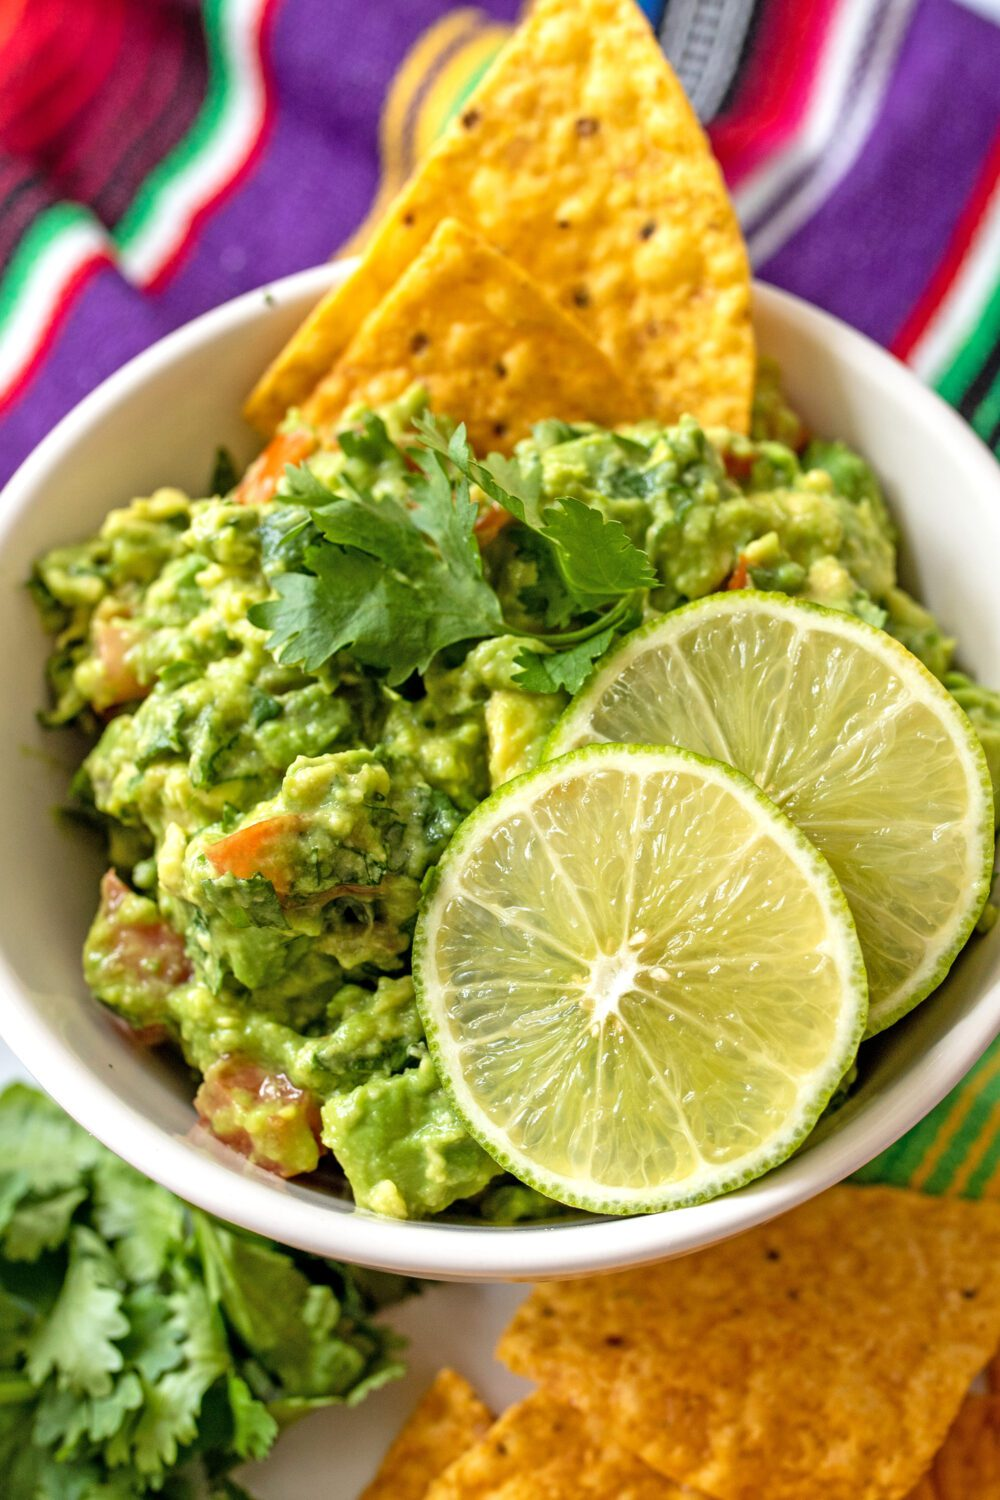 bowl of homemade guacamole with chips